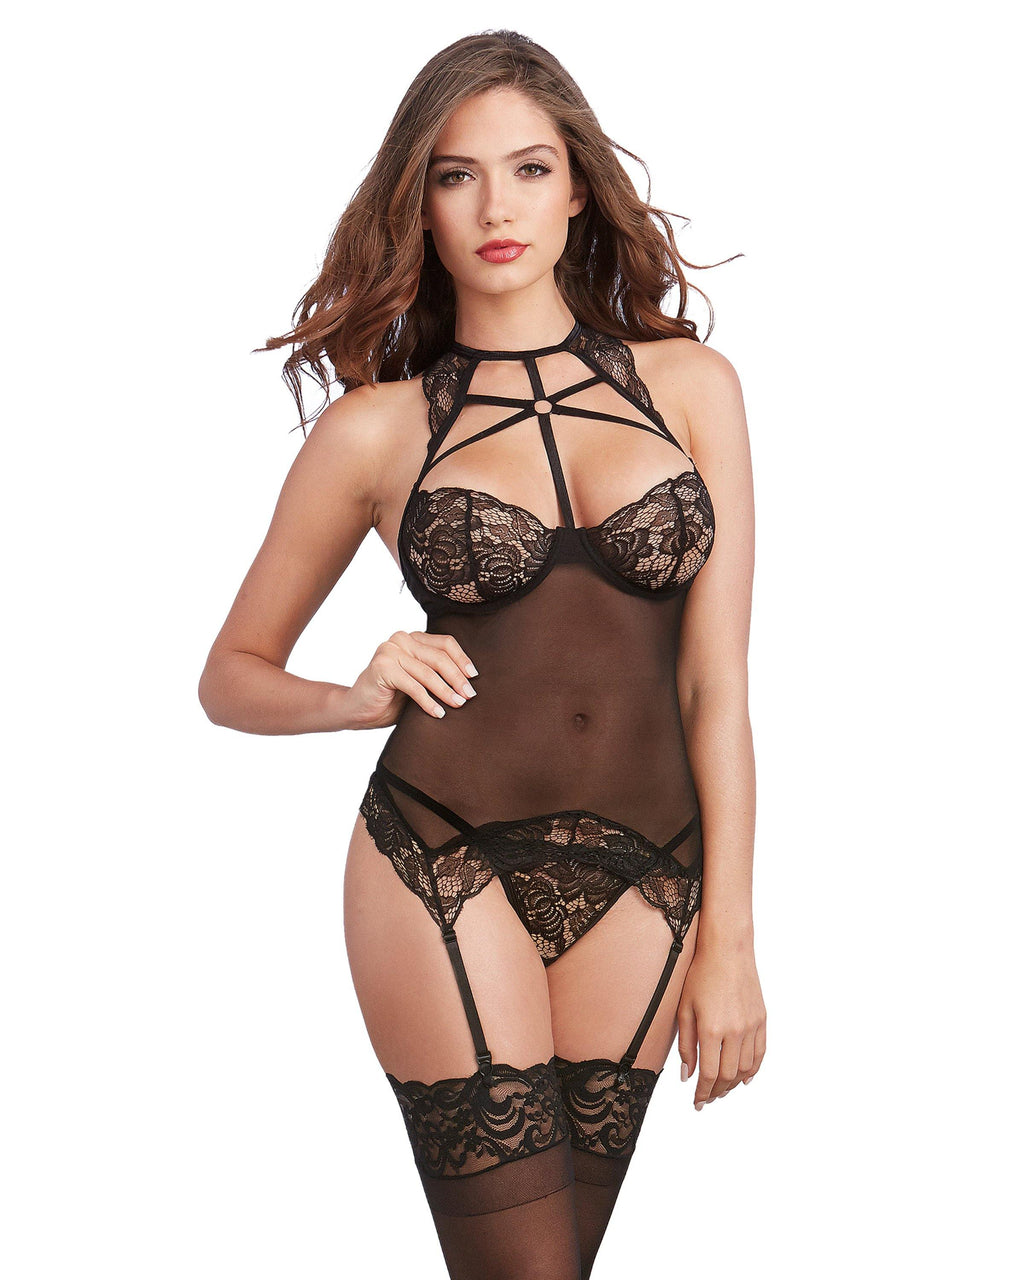 Scalloped Bustier-Styled Strappy Lingerie Set Bustier Dreamgirl International